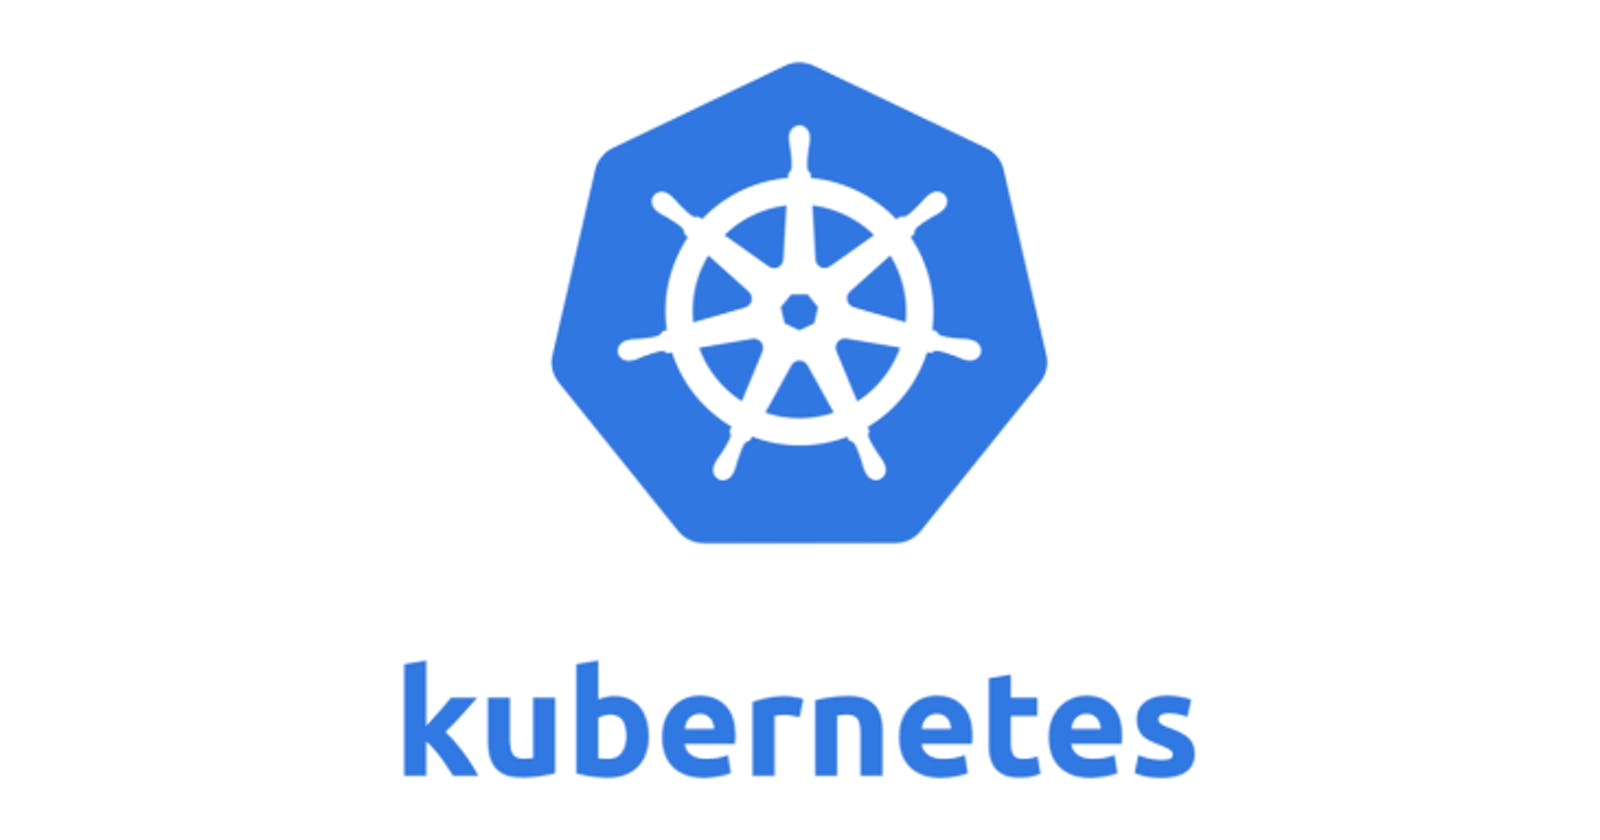 An introduction to Kubernetes.